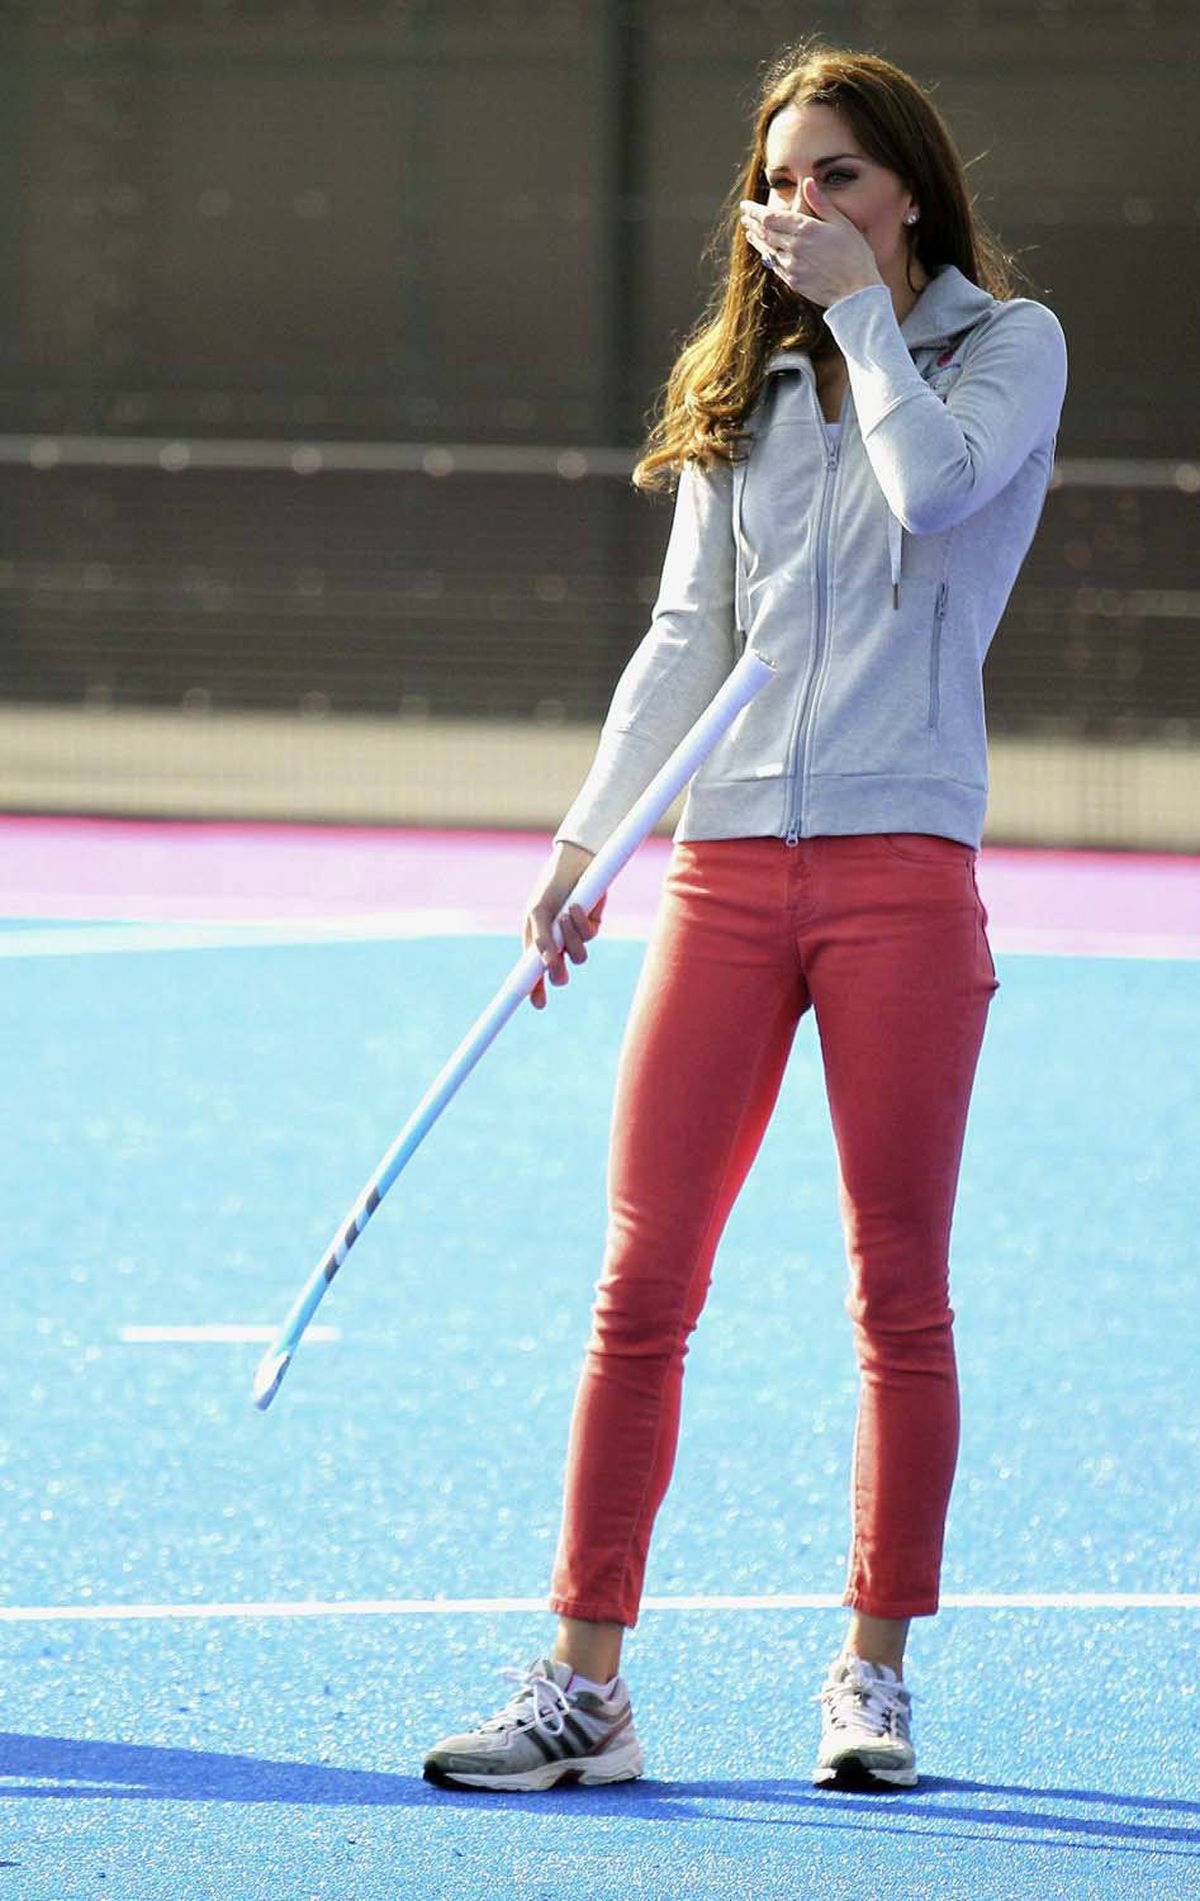 To promote the approaching Olympics, Kate plays field hockey in London's Olympic Park on March 15 while sporting a Team GB sweatshirt and on-trend skinny coral jeans by J. Brand.